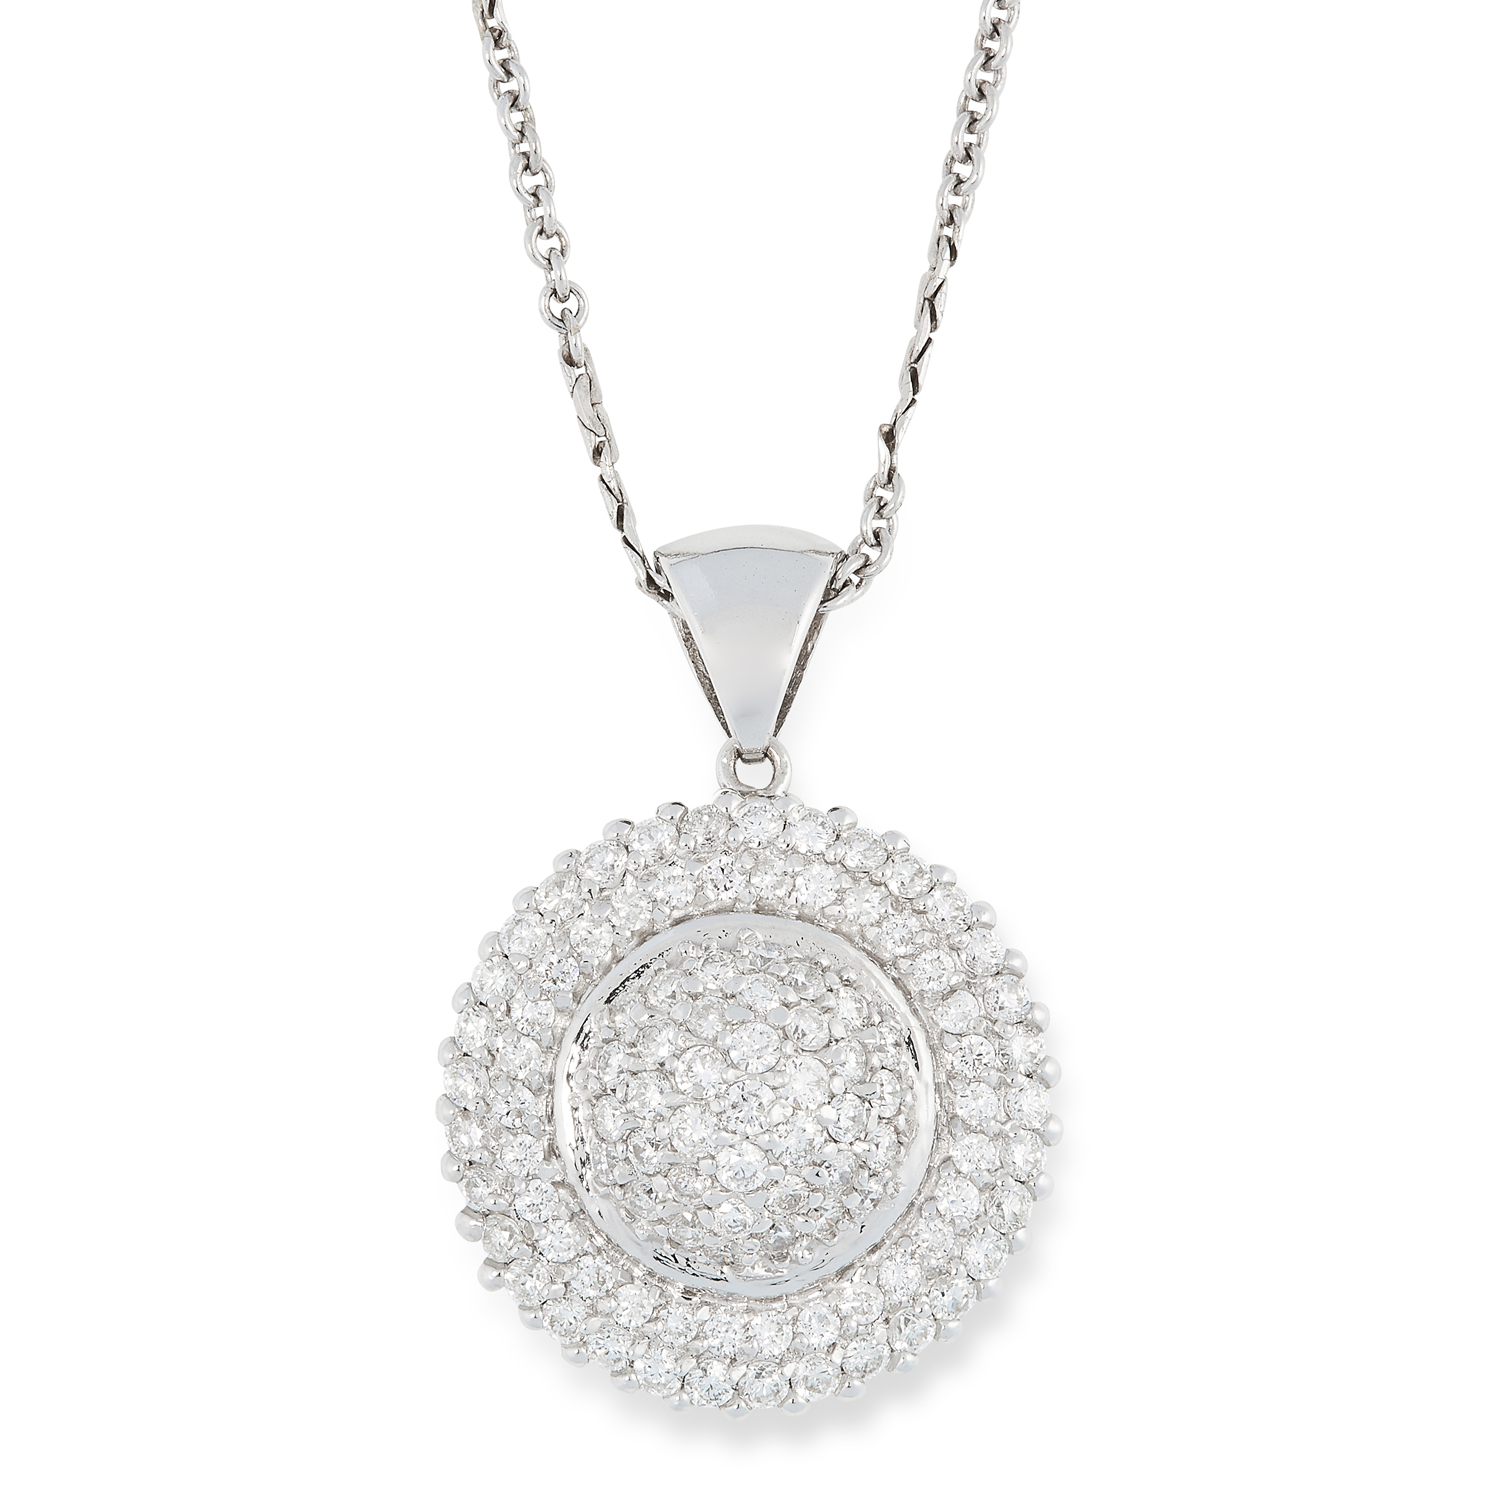 A DIAMOND PENDANT in circular design, pave set with round brilliant cut diamonds, 3cm, 10.73g.